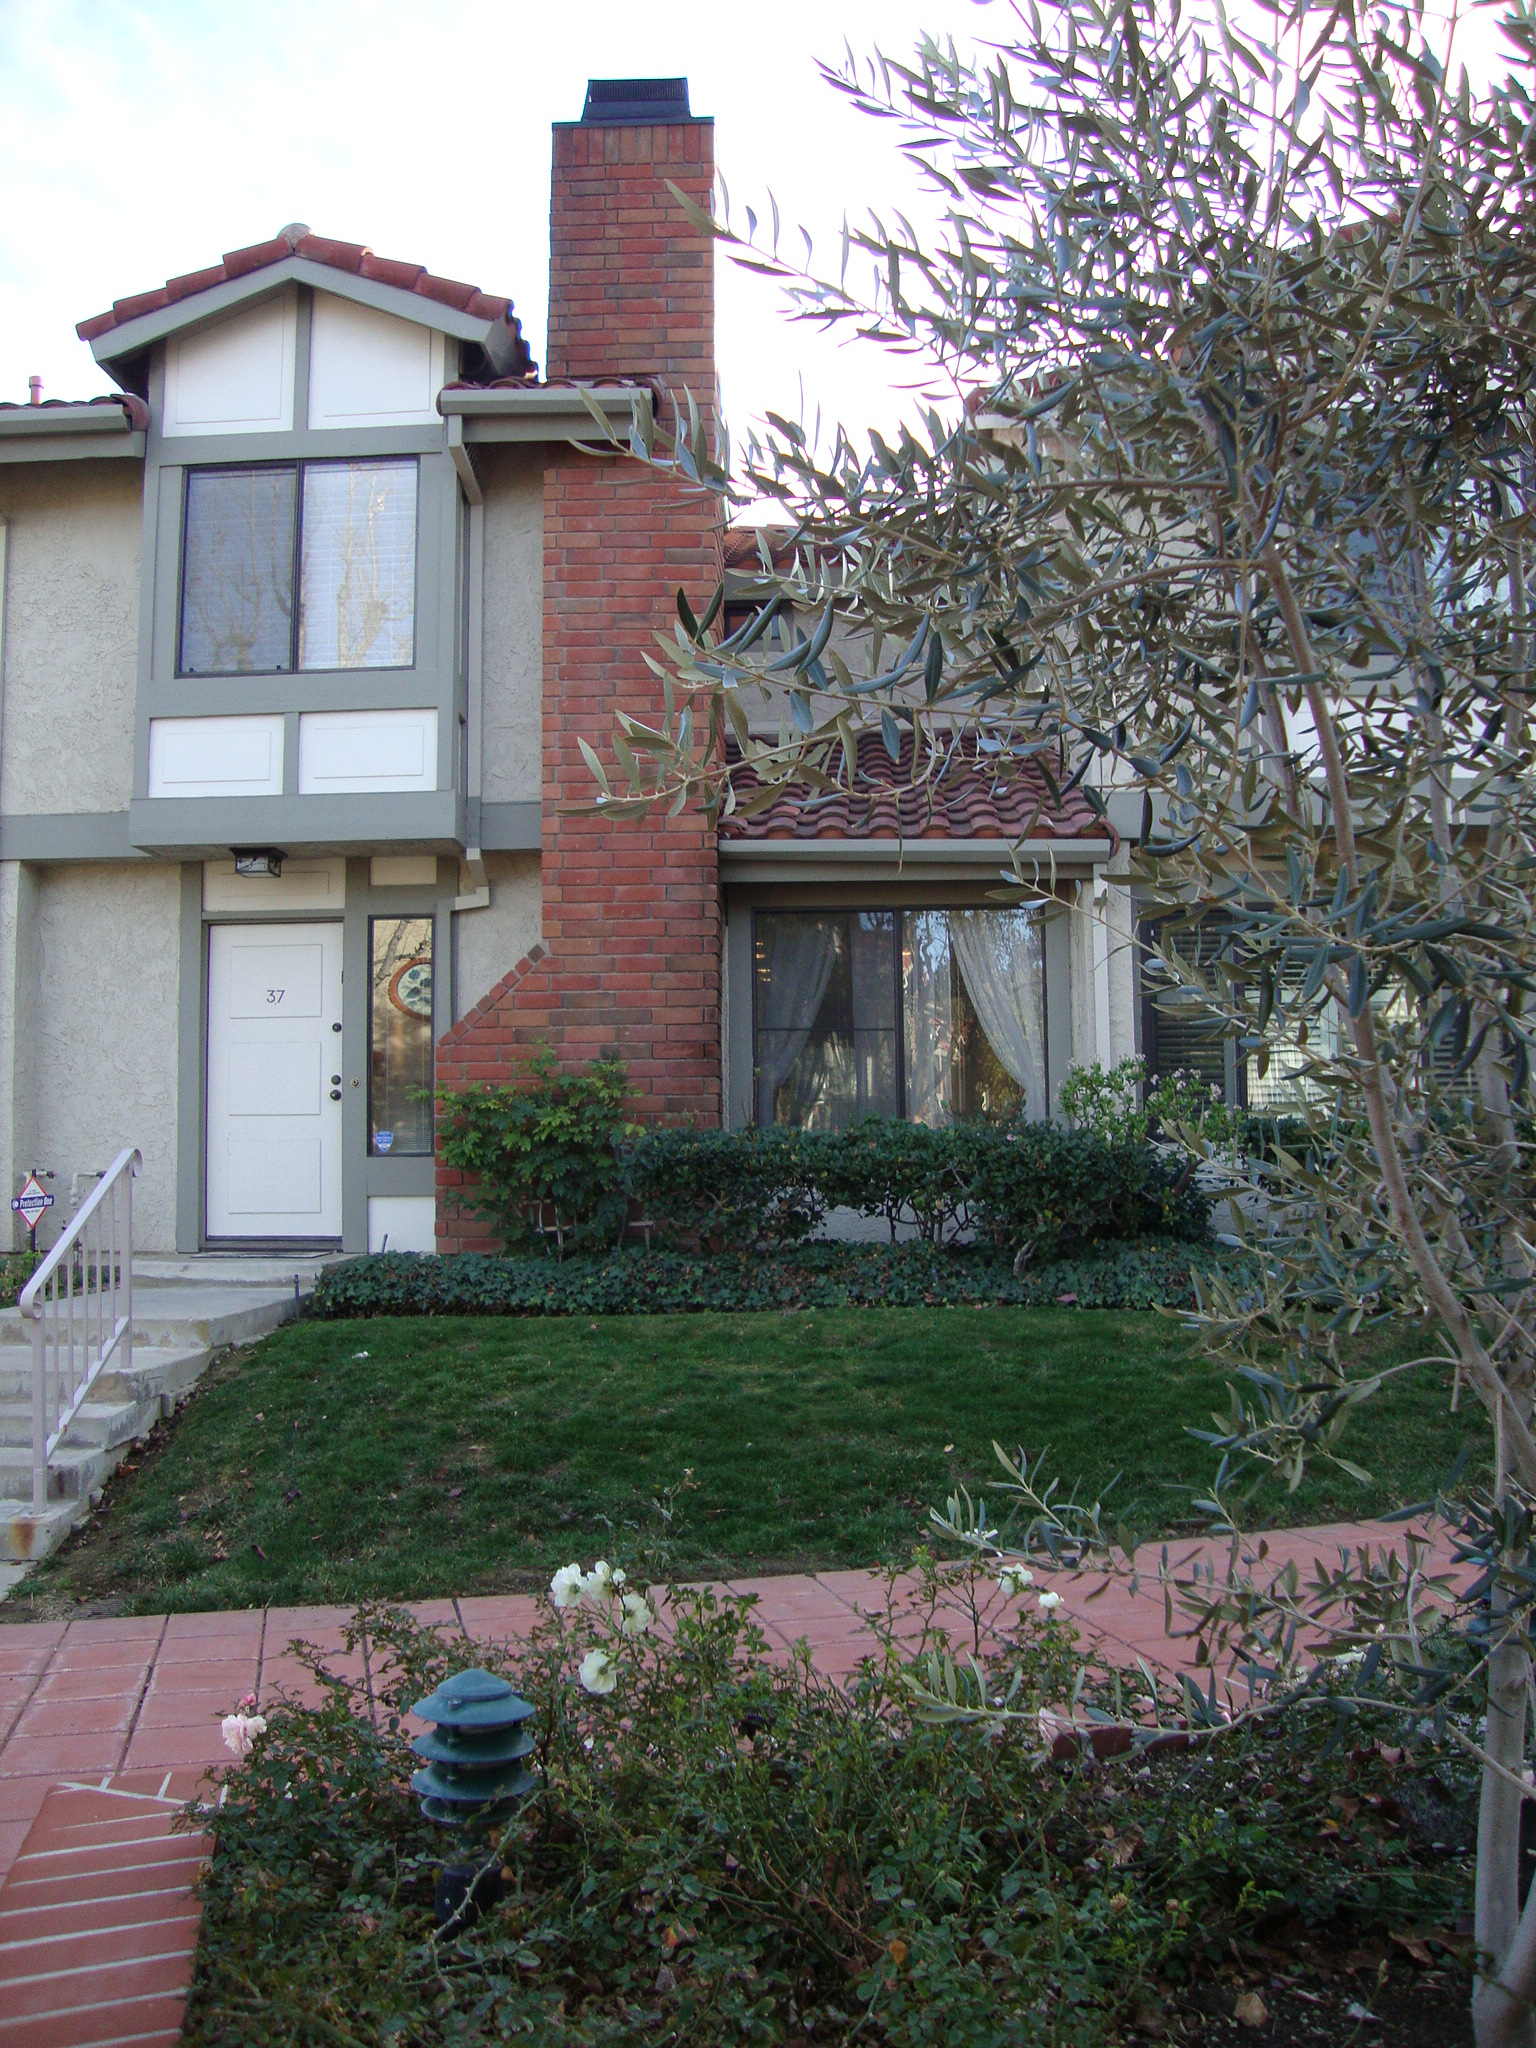 Townhouse for Sale at 6811 Valley Circle Blvd #37 6811 Valley Circle Blvd 37 West Hills, California 91307 United States